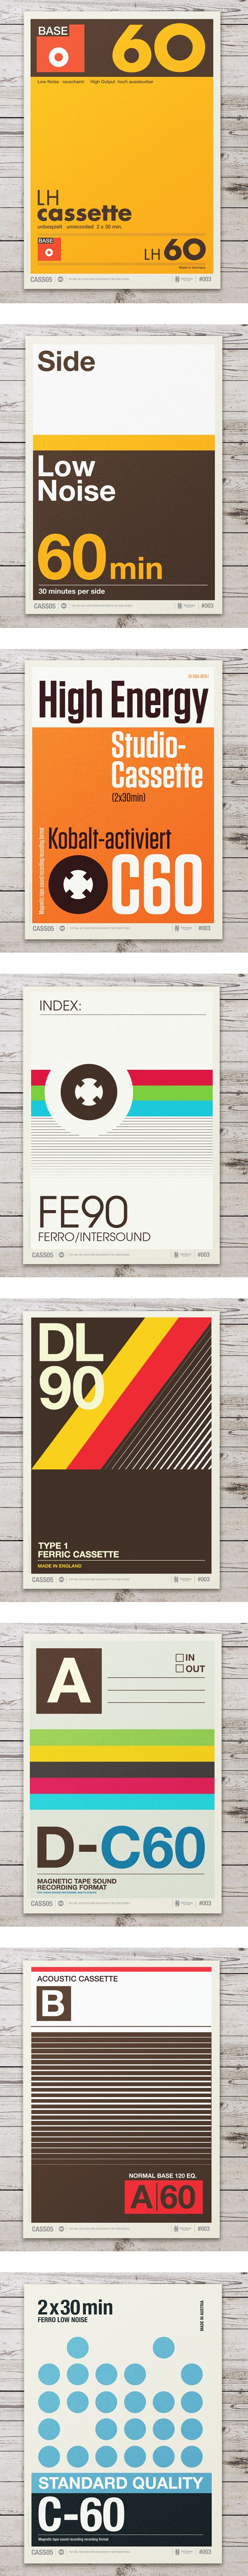 Retro Graphic Design Of Cassette Labels Turned Into Typographic Posters by Neil Stevens